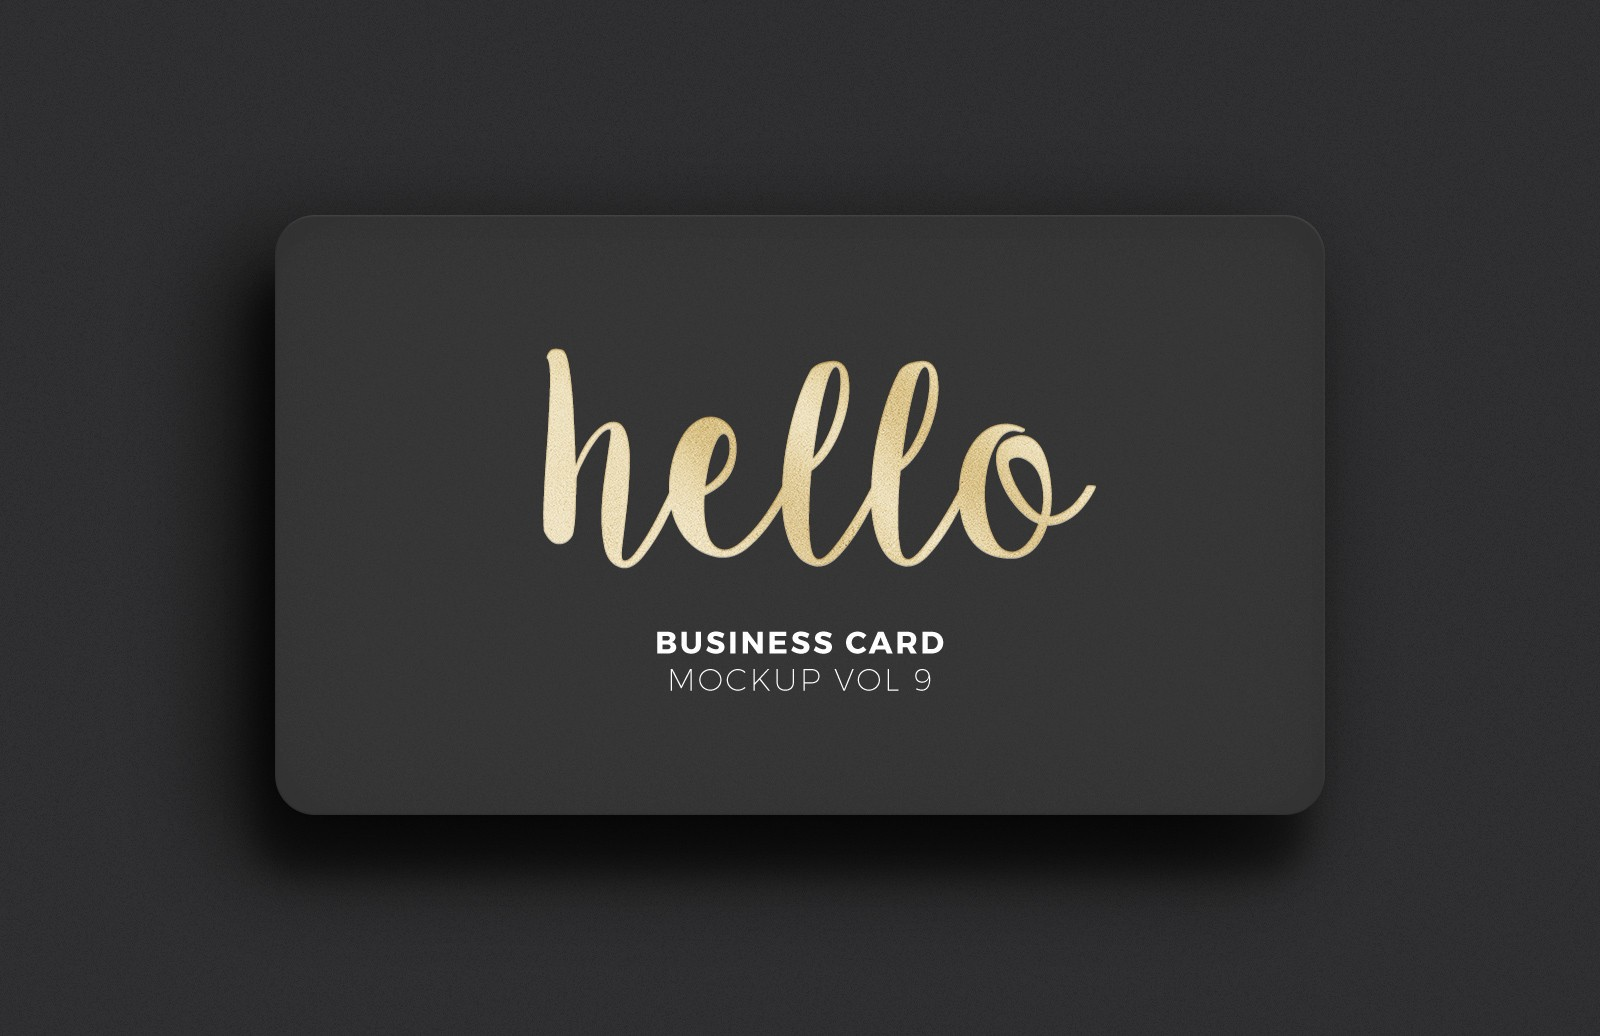 Large Business  Card  Mockup  Vol 9  Preview 1